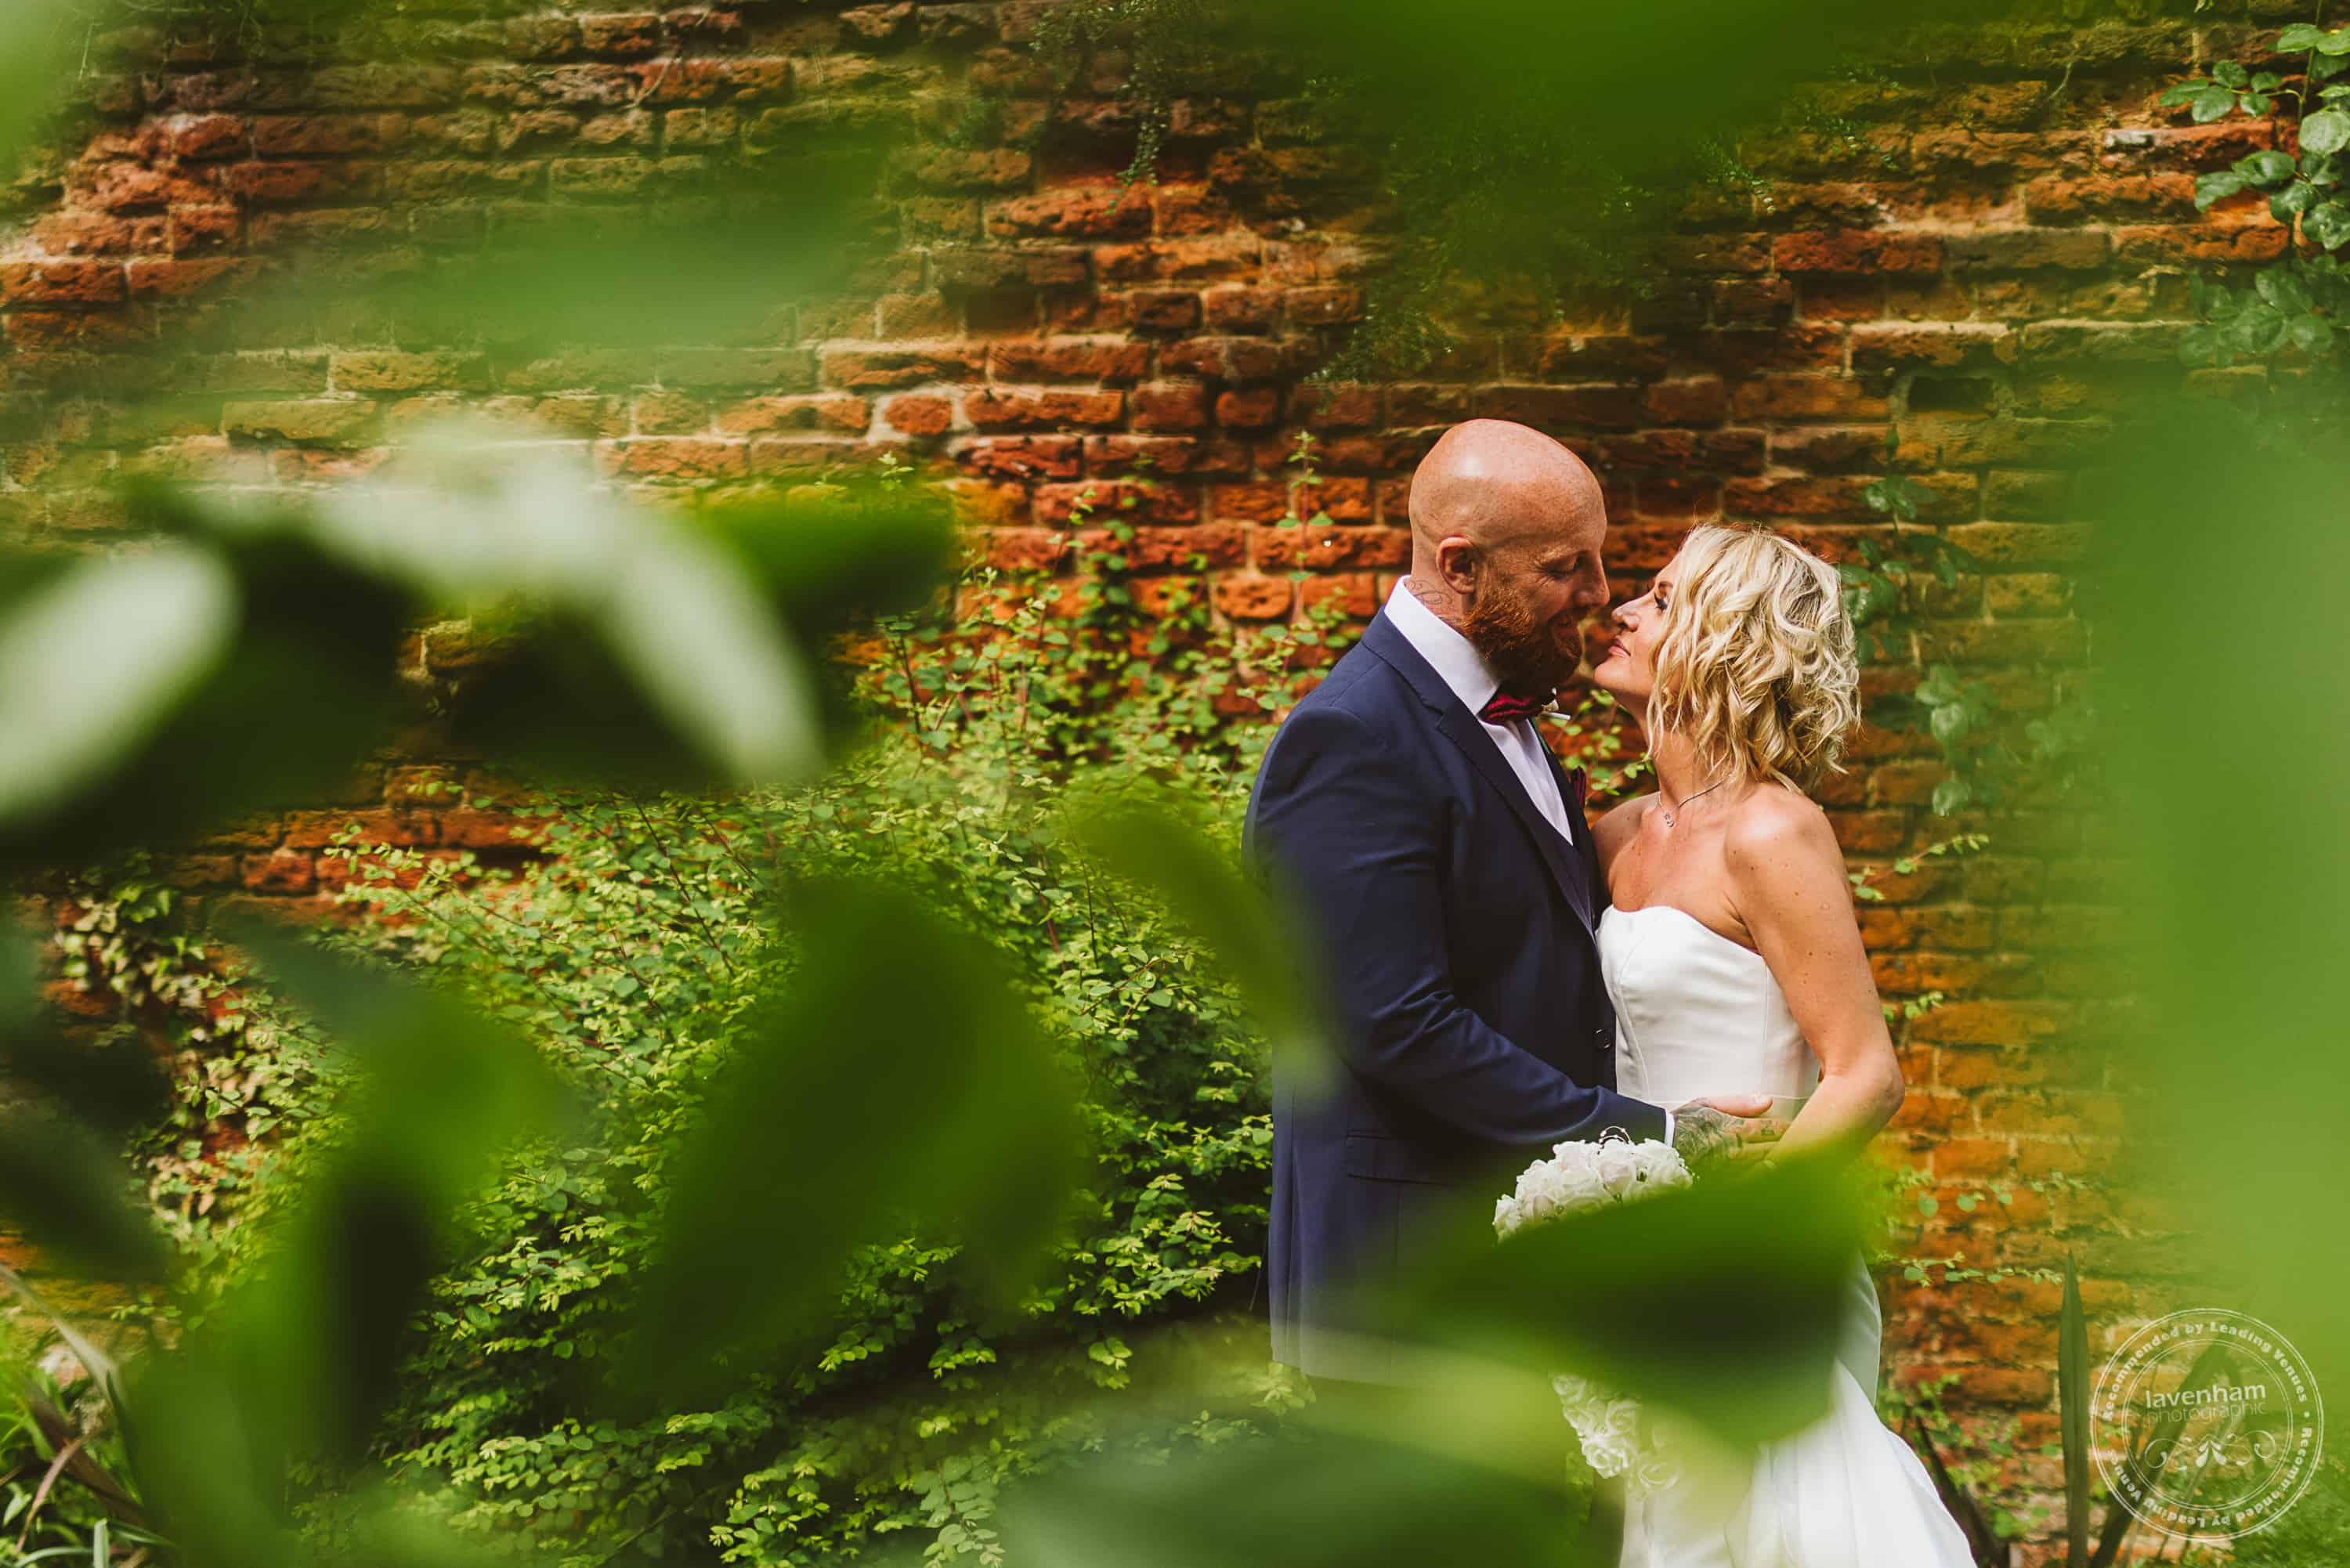 Framing a wedding photo through leaves